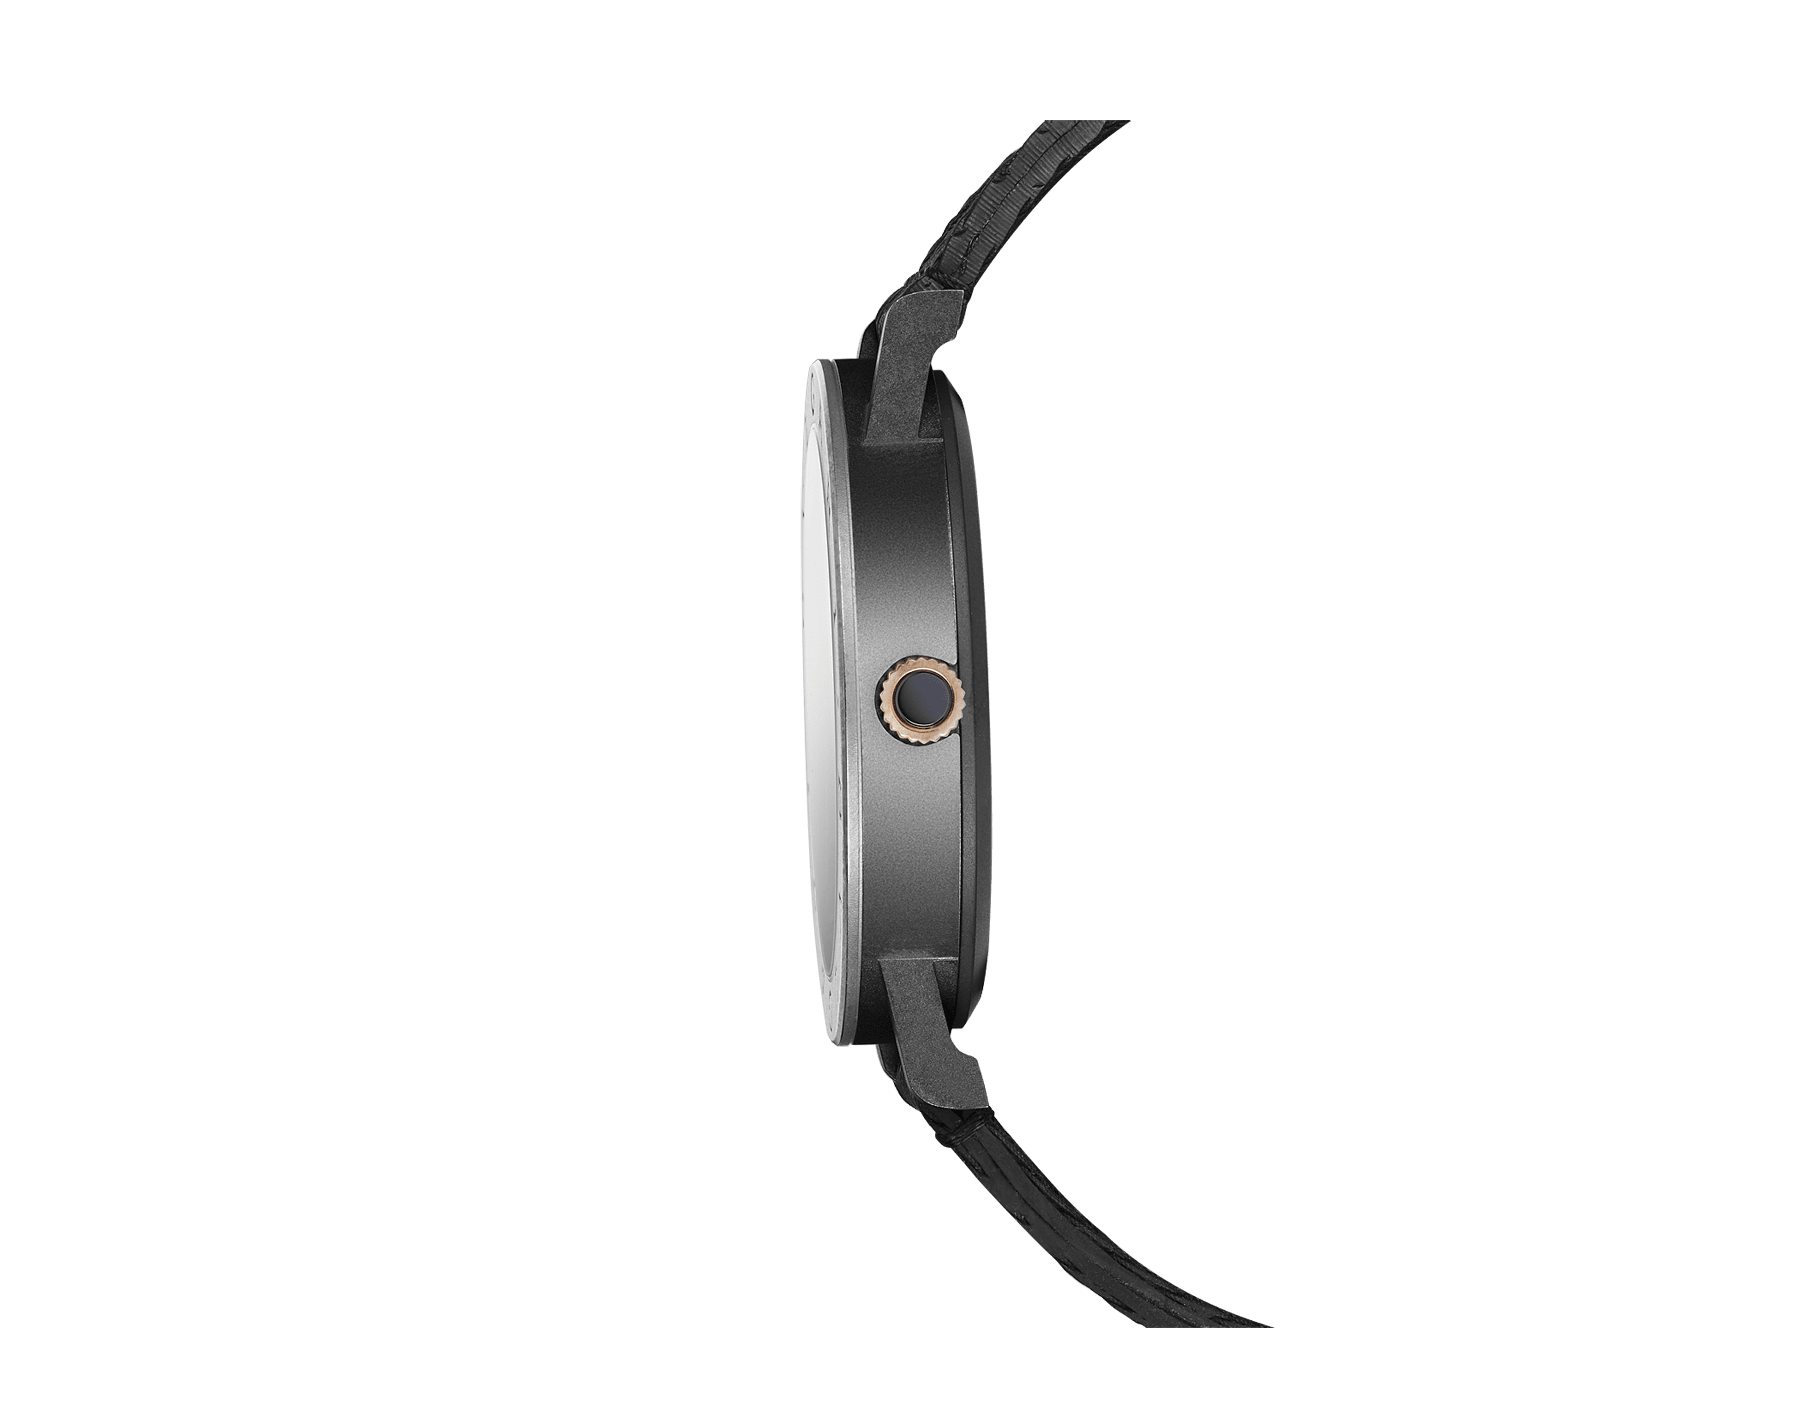 BVLGARI BVLGARI Solotempo watch with mechanical manufacture movement, automatic winding and date, stainless steel case treated with black Diamond Like Carbon and bezel engraved with double logo, black dial and black rubber bracelet 102929 image 2